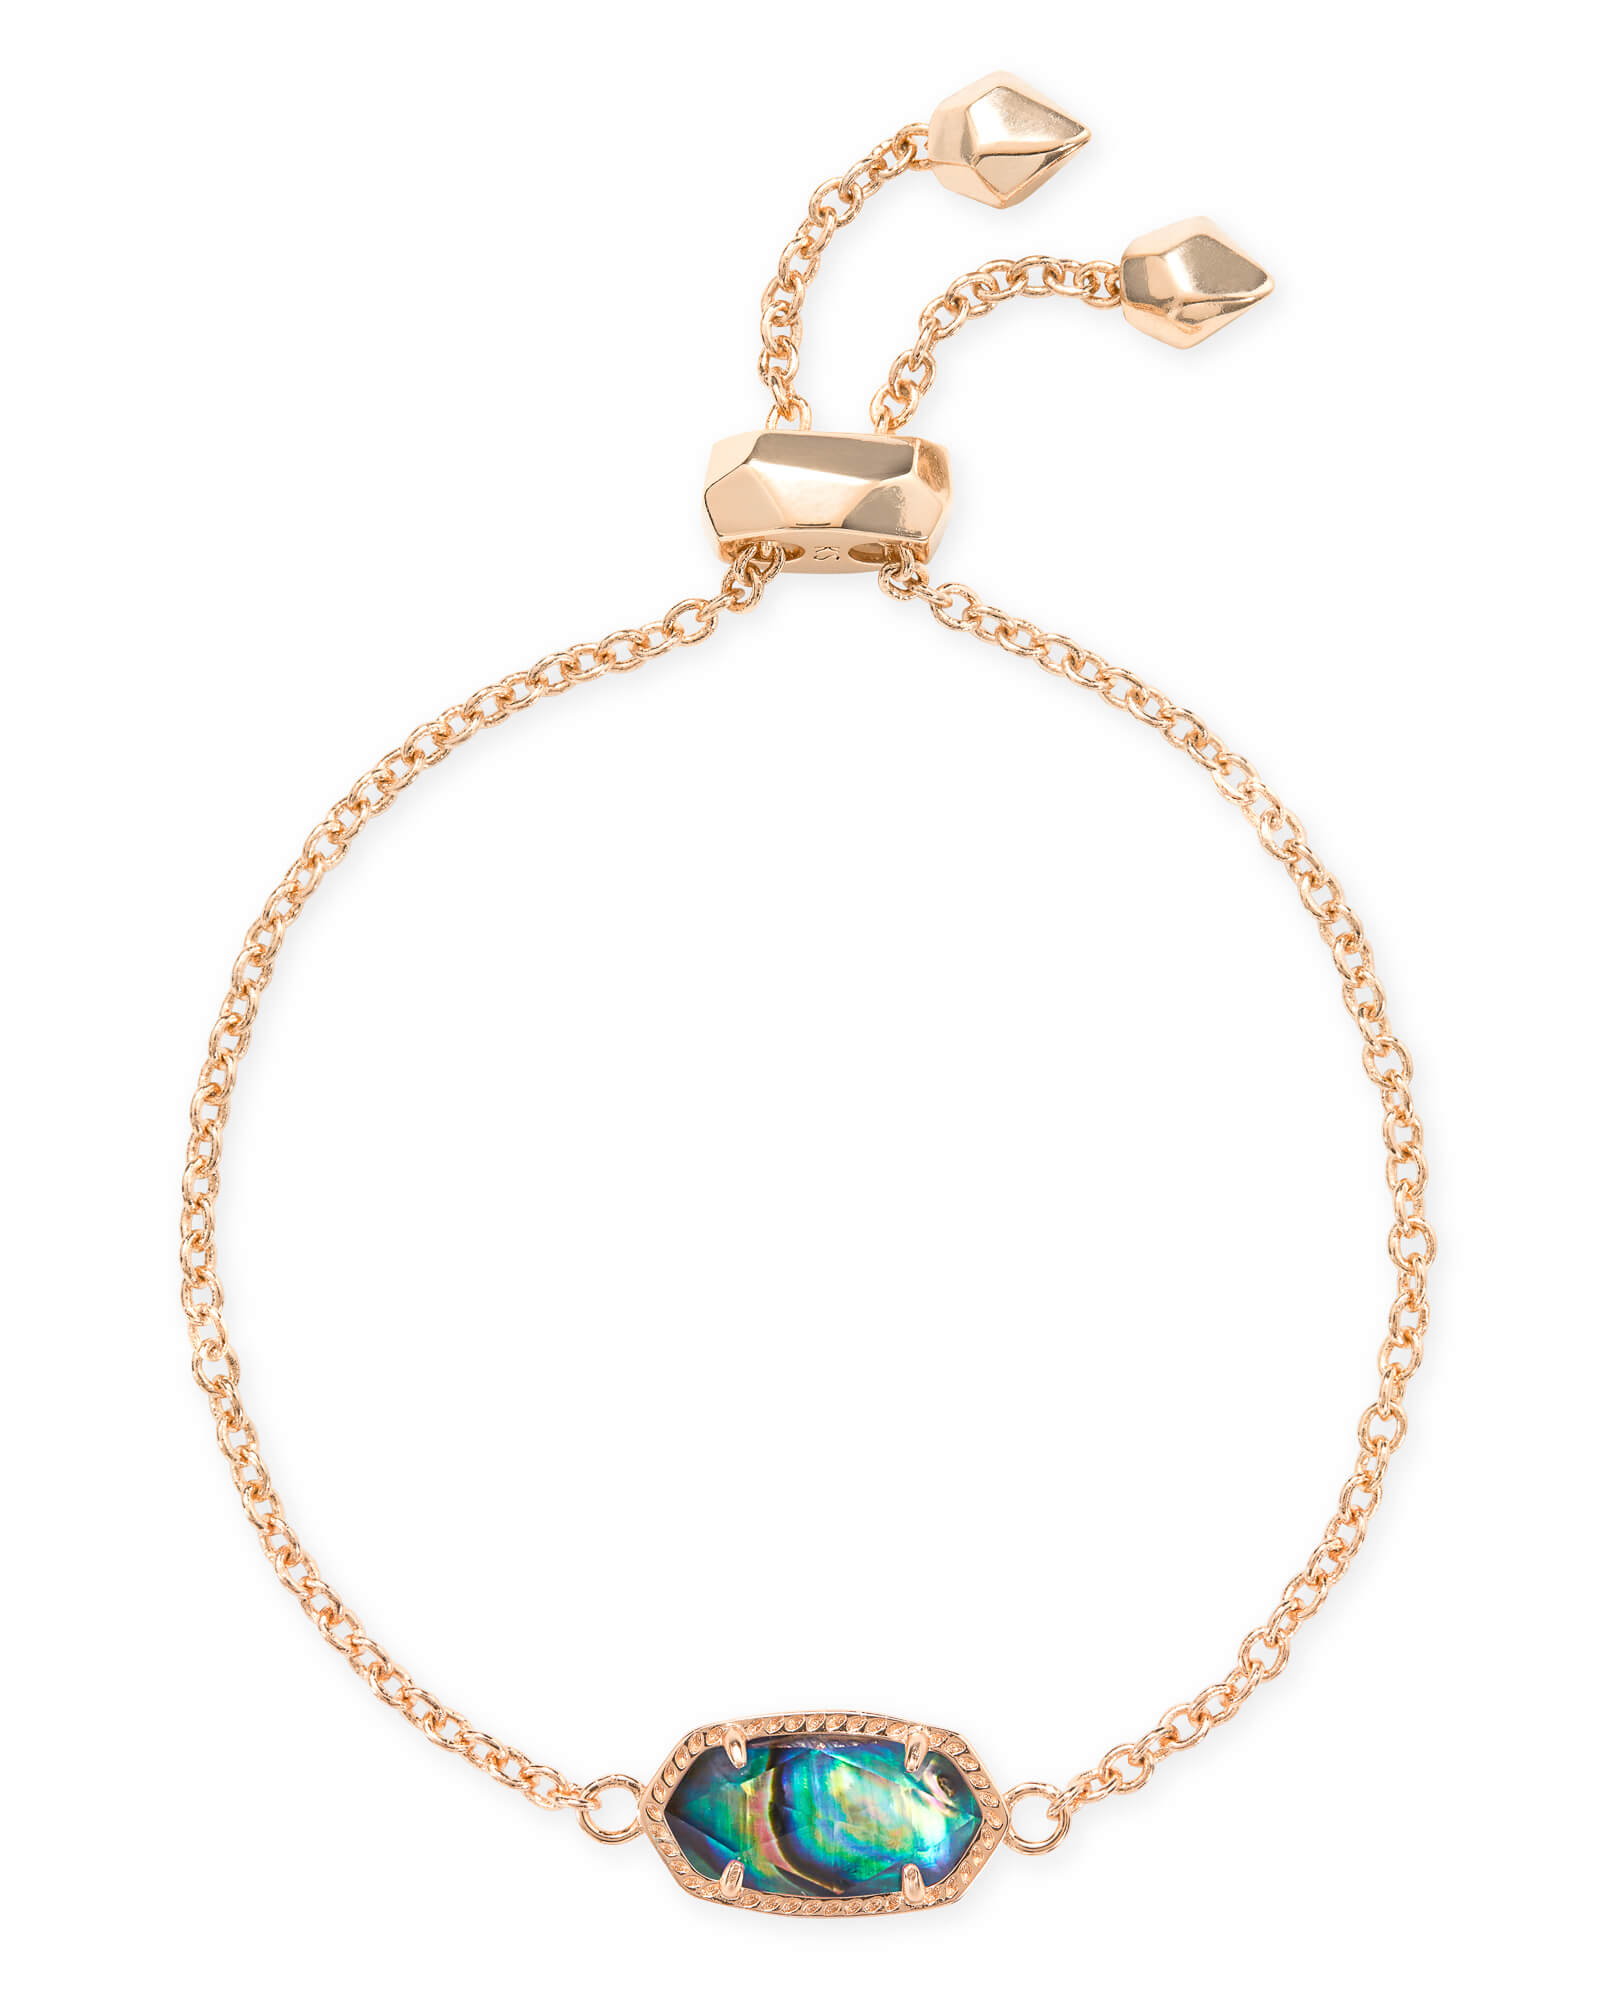 Elaina Rose Gold Adjustable Chain Bracelet in Abalone Shell